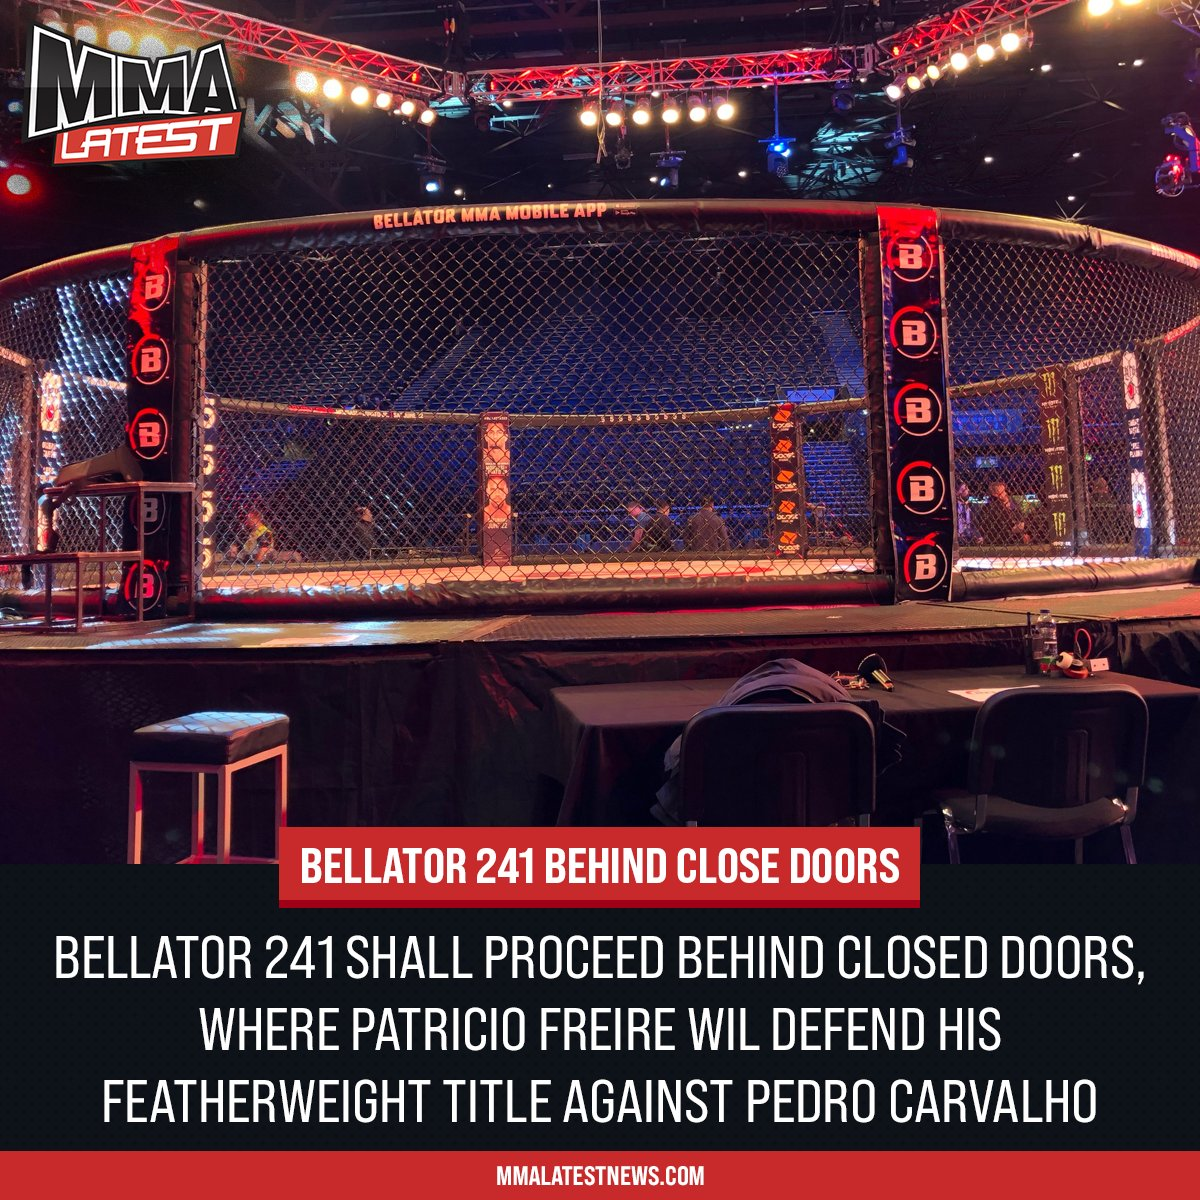 🚨#Bellator241 will take place behind closed doors!   Pedro Carvalho fights Patricio Freire for the Featherweight Title in the #FeatherweightWGP  @Bellator_Europe @BellatorMMA https://t.co/Hxdsp7hpAD